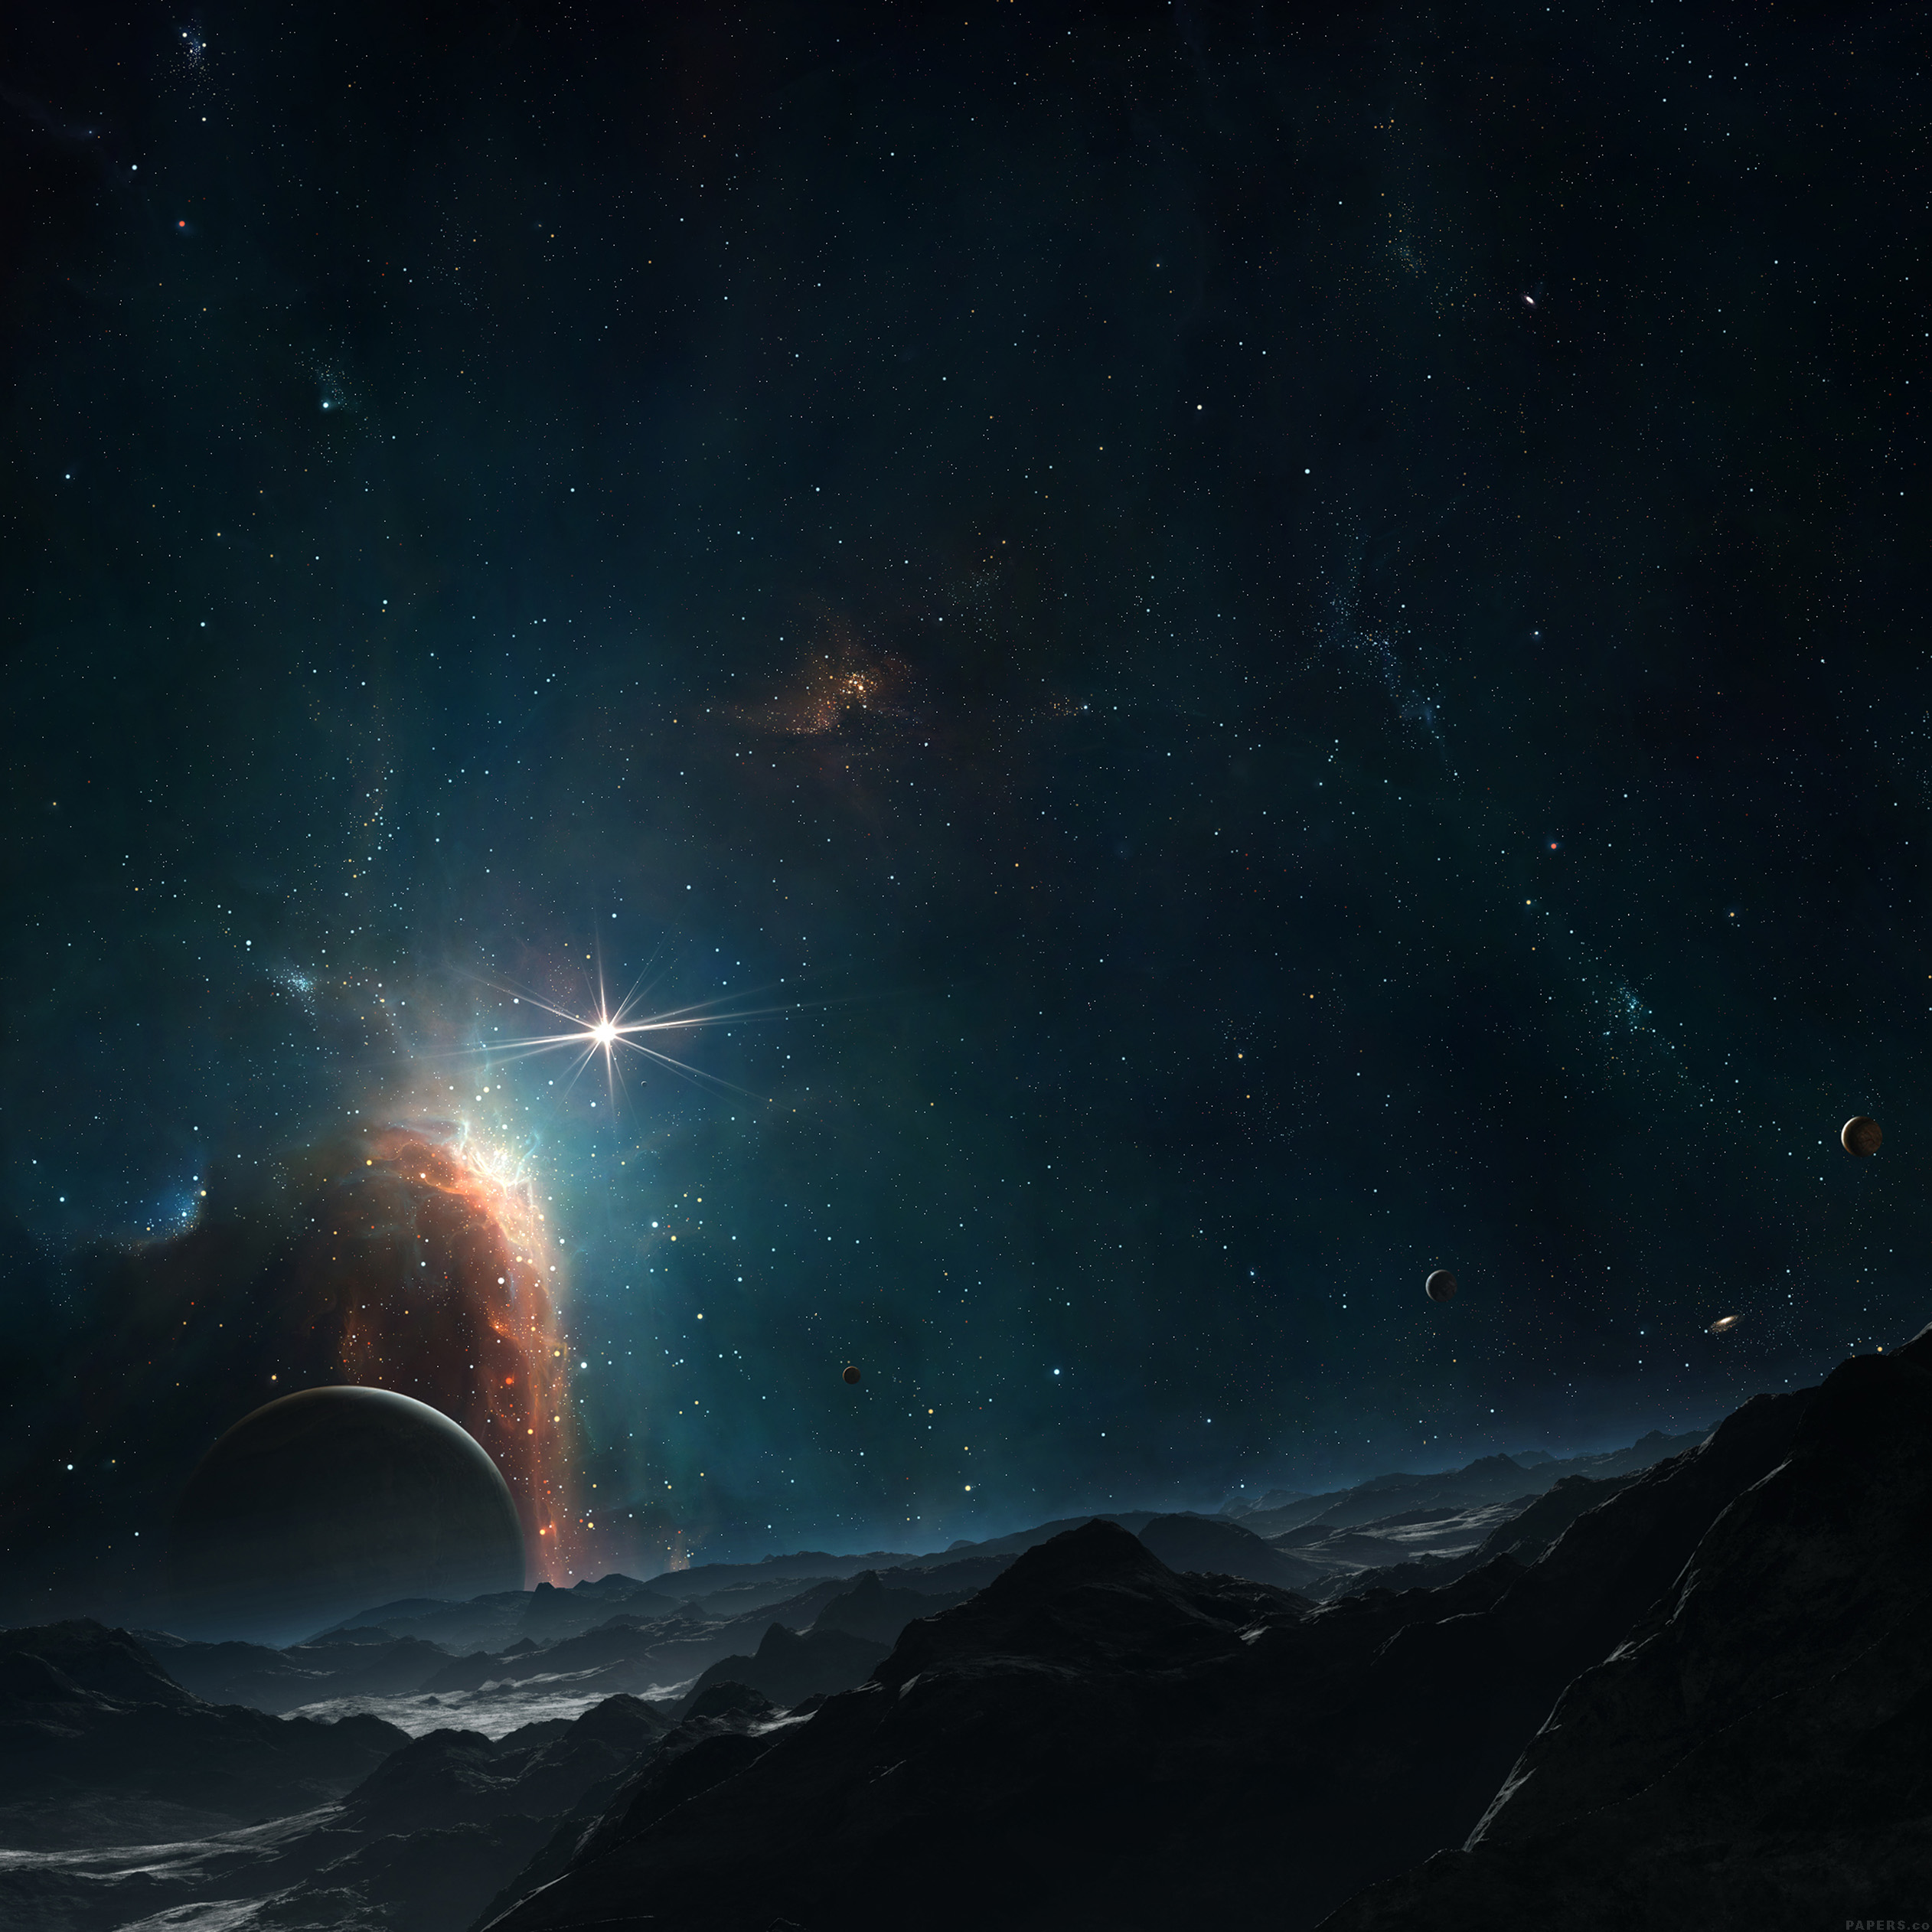 dark-space-sky-planet-nature-art-9-wallpaper